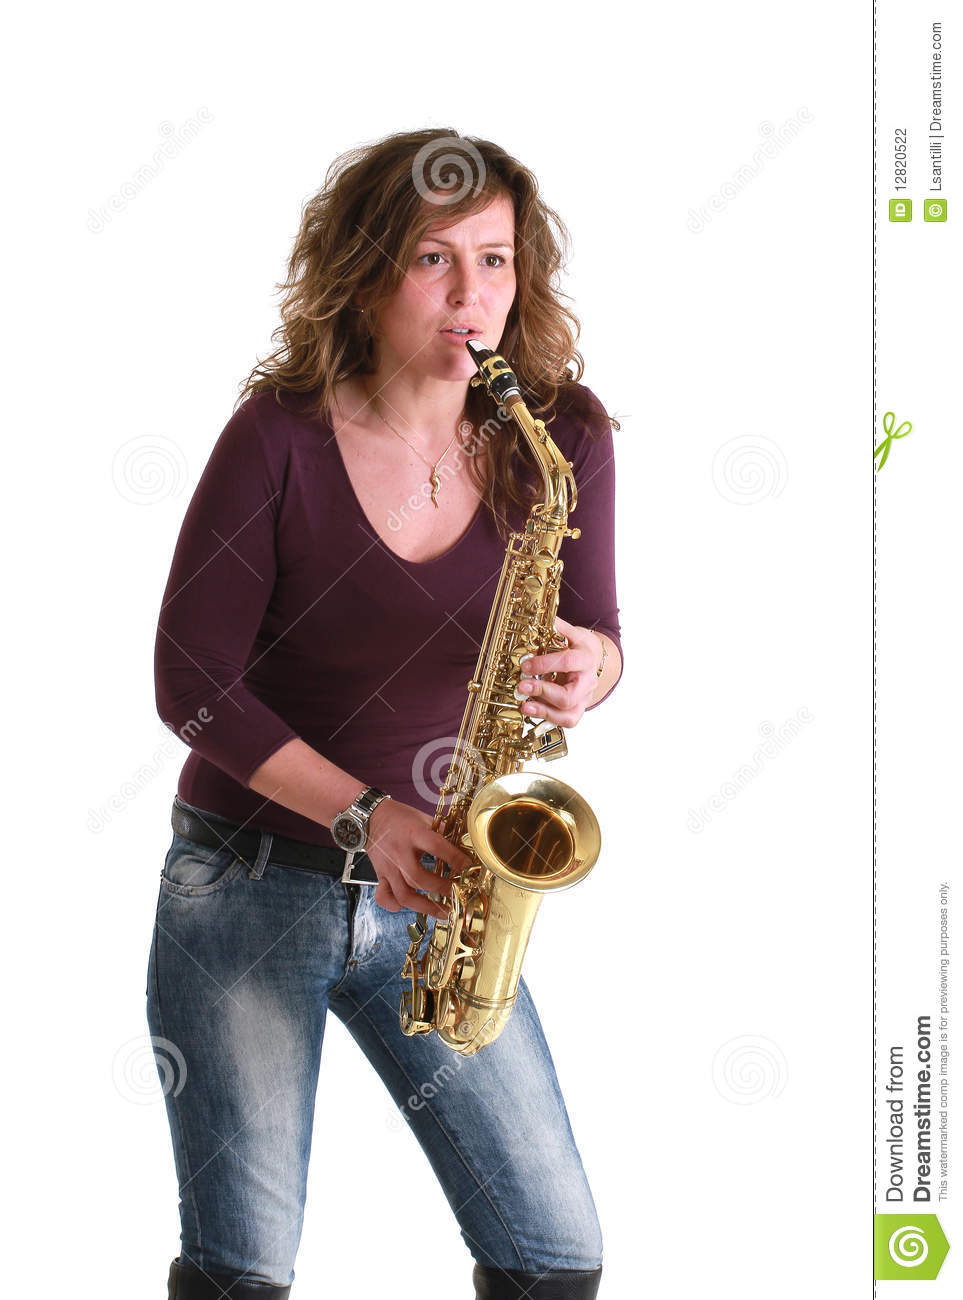 Girl With Sax Stock Photo Image Of Elegant, Girl, Lady -5879